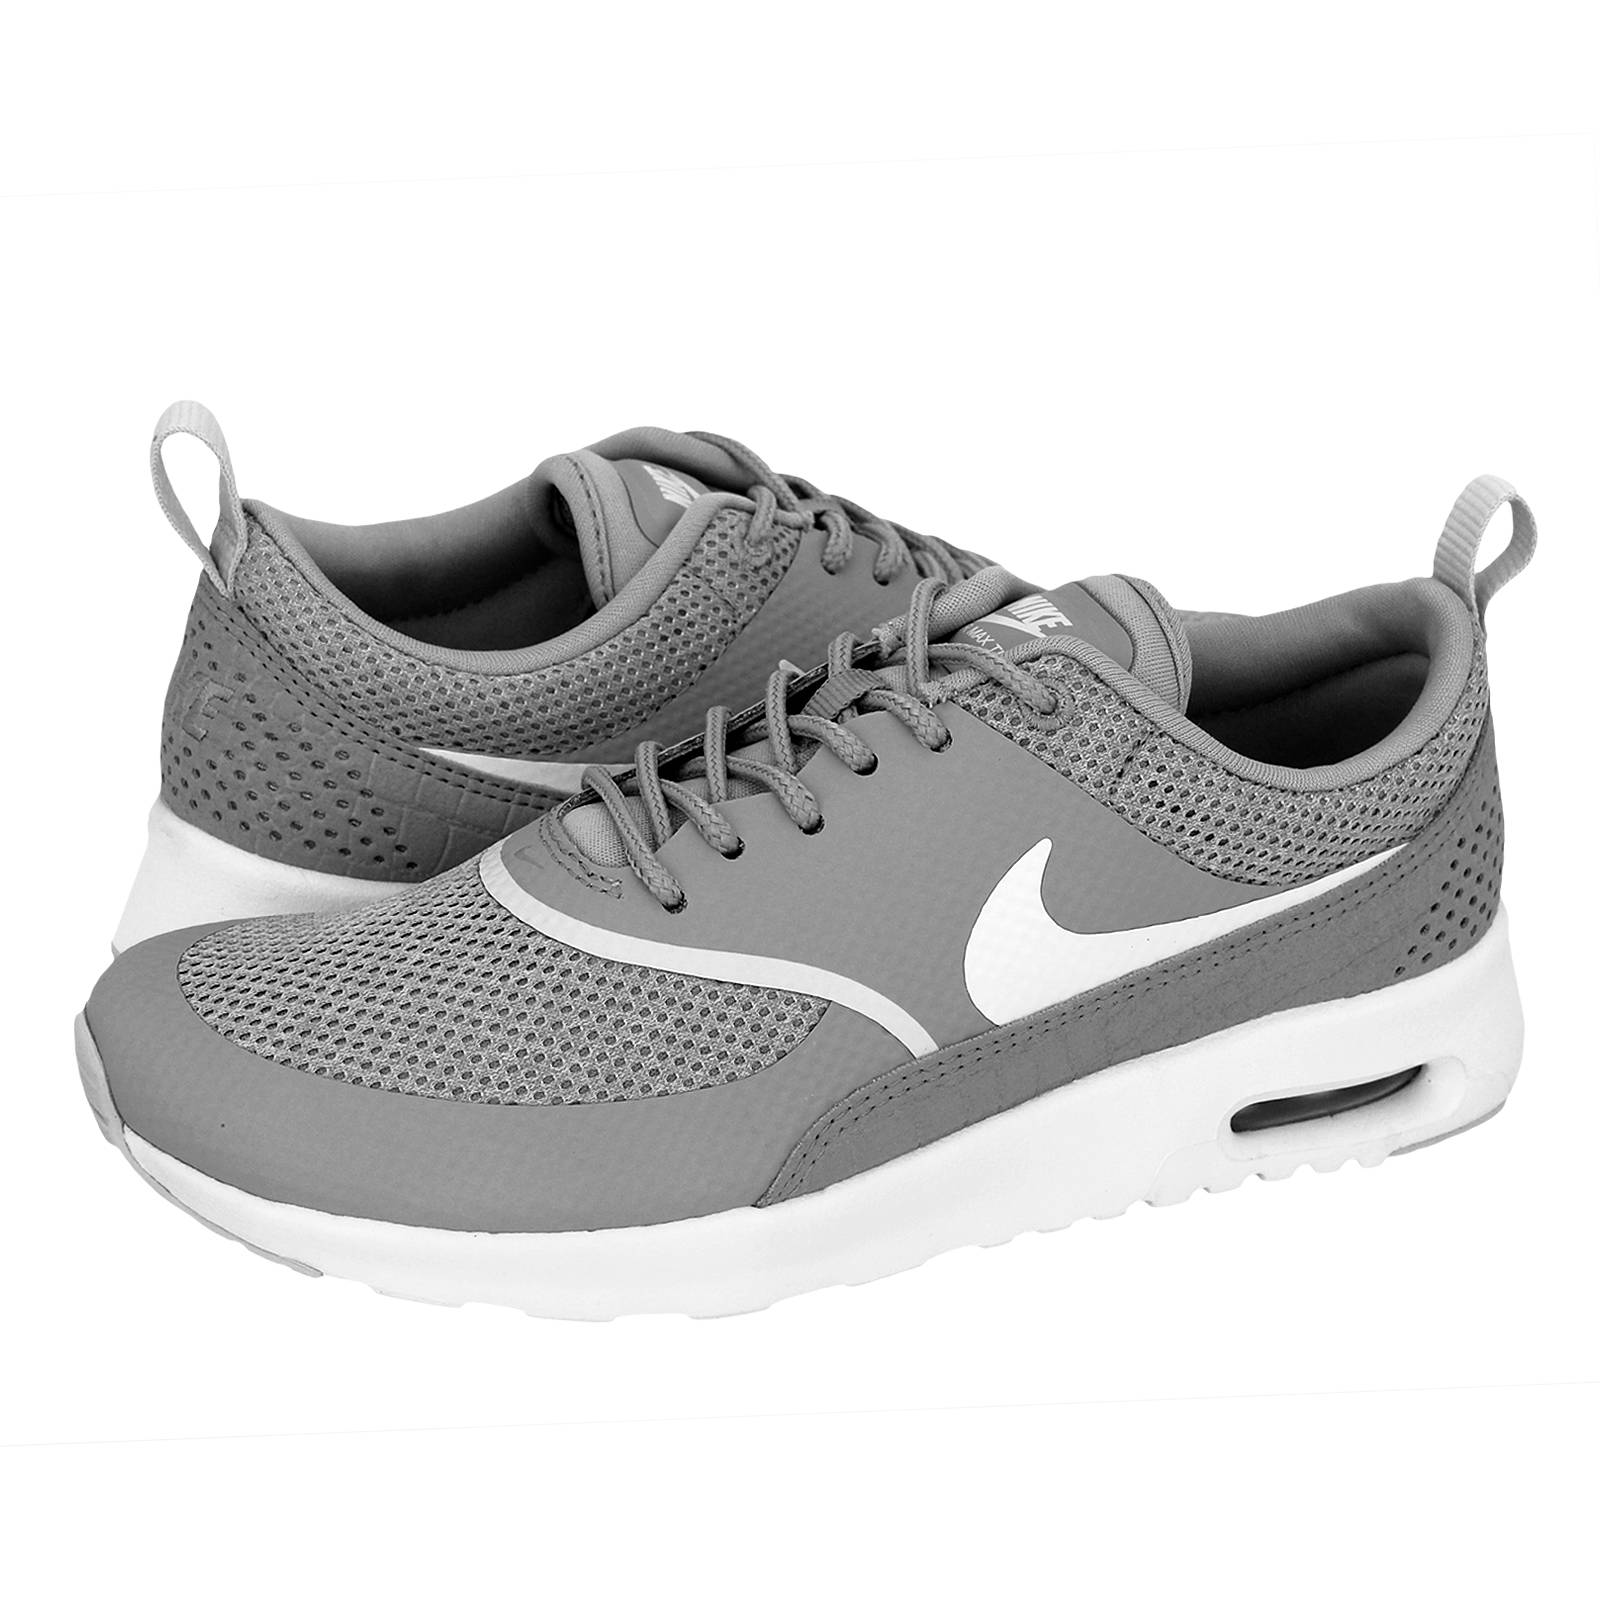 7d66463498f Air Max Thea - Γυναικεία αθλητικά παπούτσια Nike από υφασμα και ...